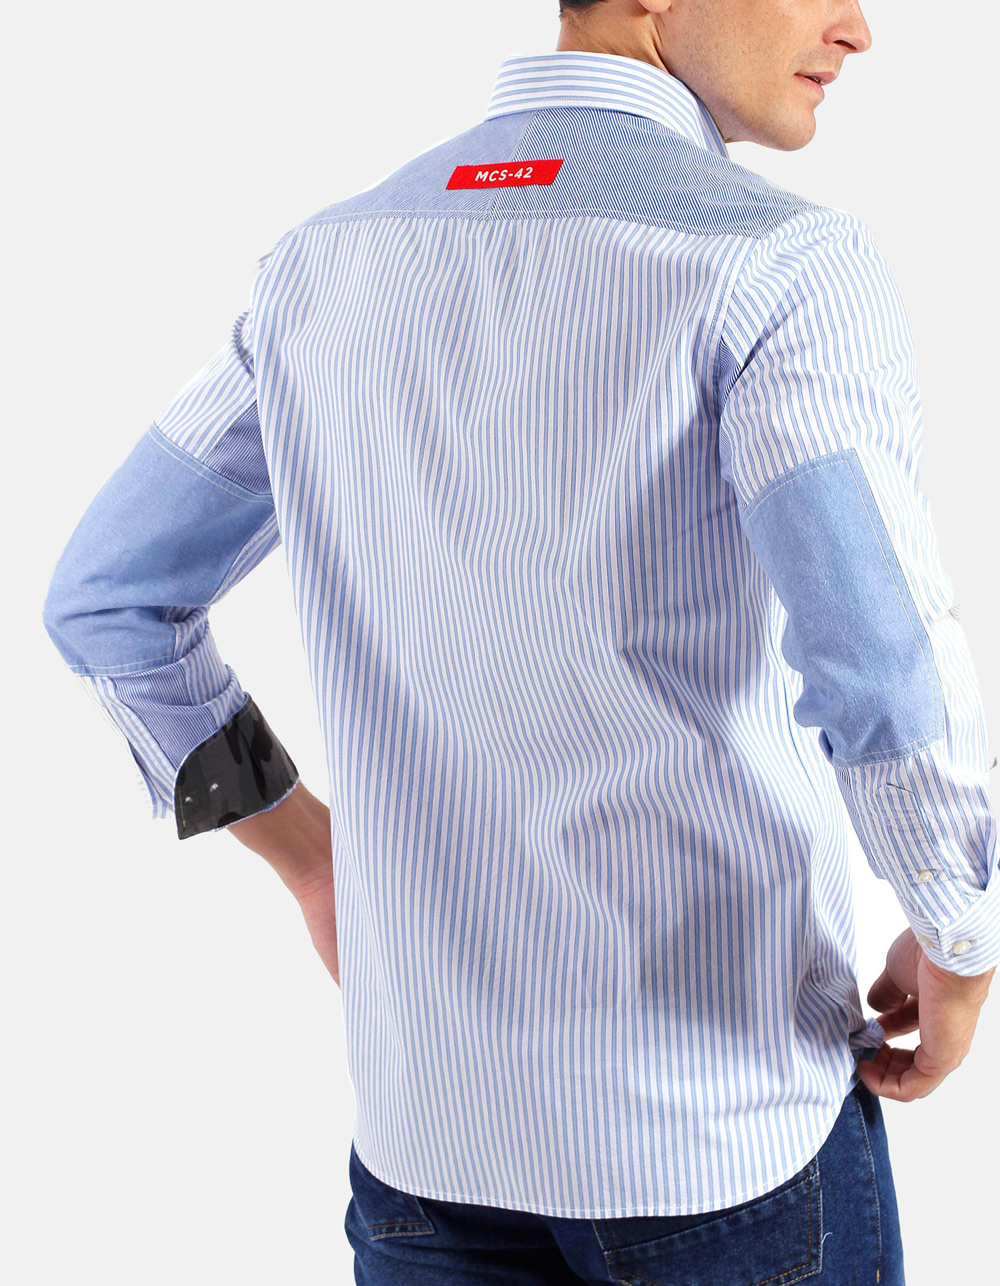 Blue White striped shirt  - Backside